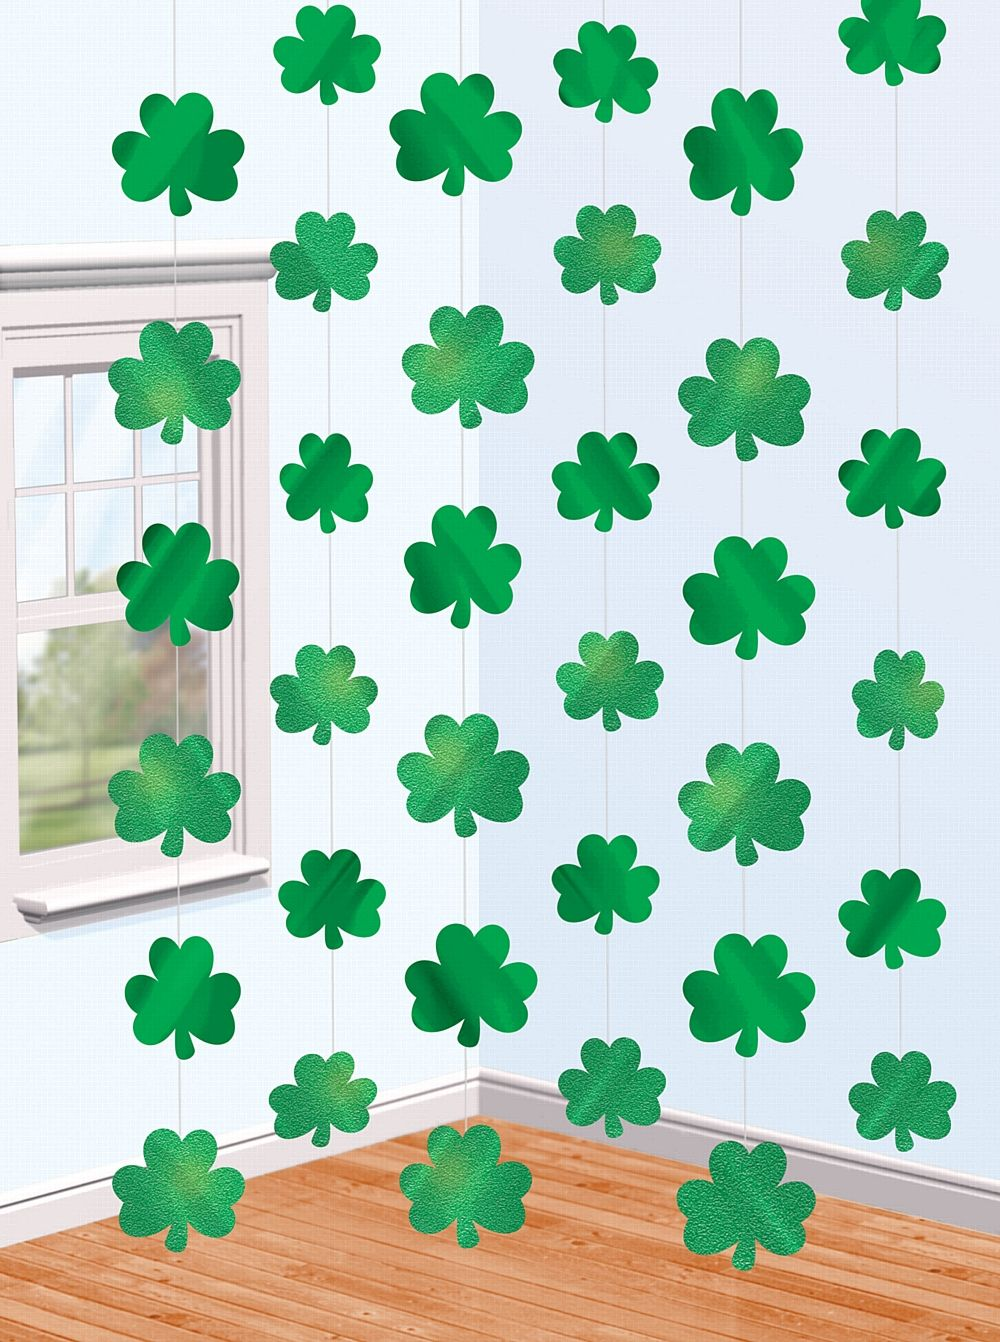 Around The World Decoration Ideas Shamrock St Patrick S Day String Decoration 6m St Patrick S Day